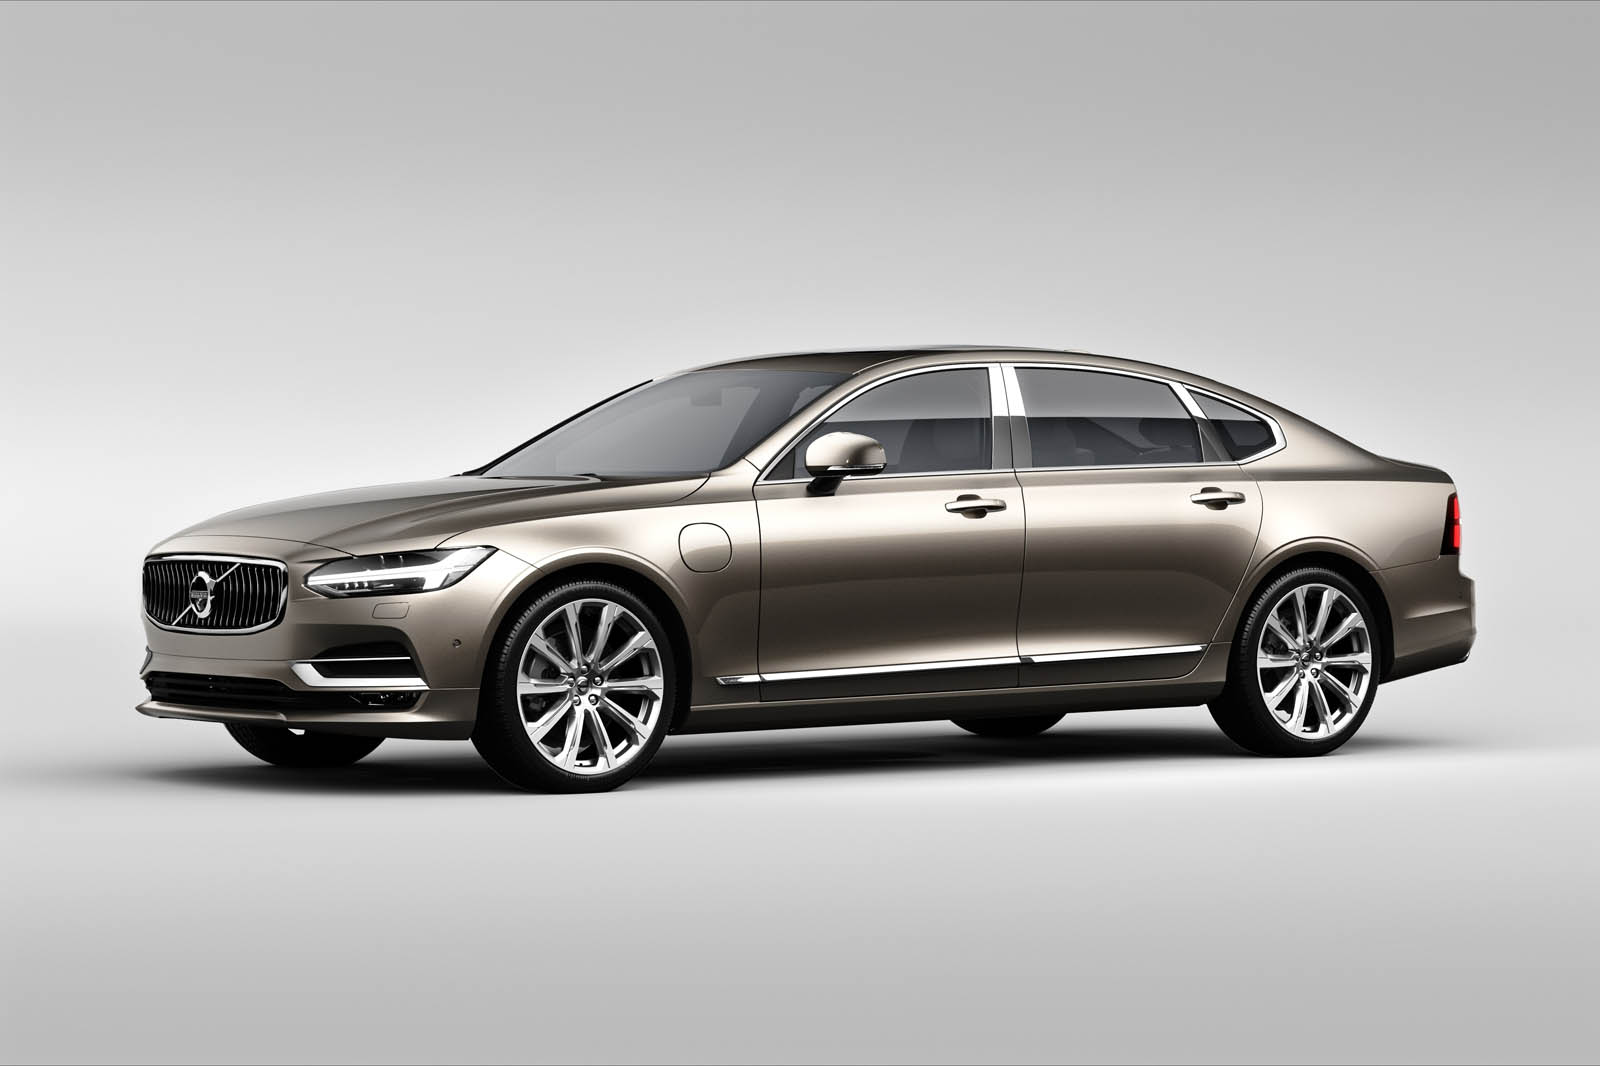 2018 Volvo S90 T8 Twin-Engine PHEV With 400HP Reaches America From $63,650